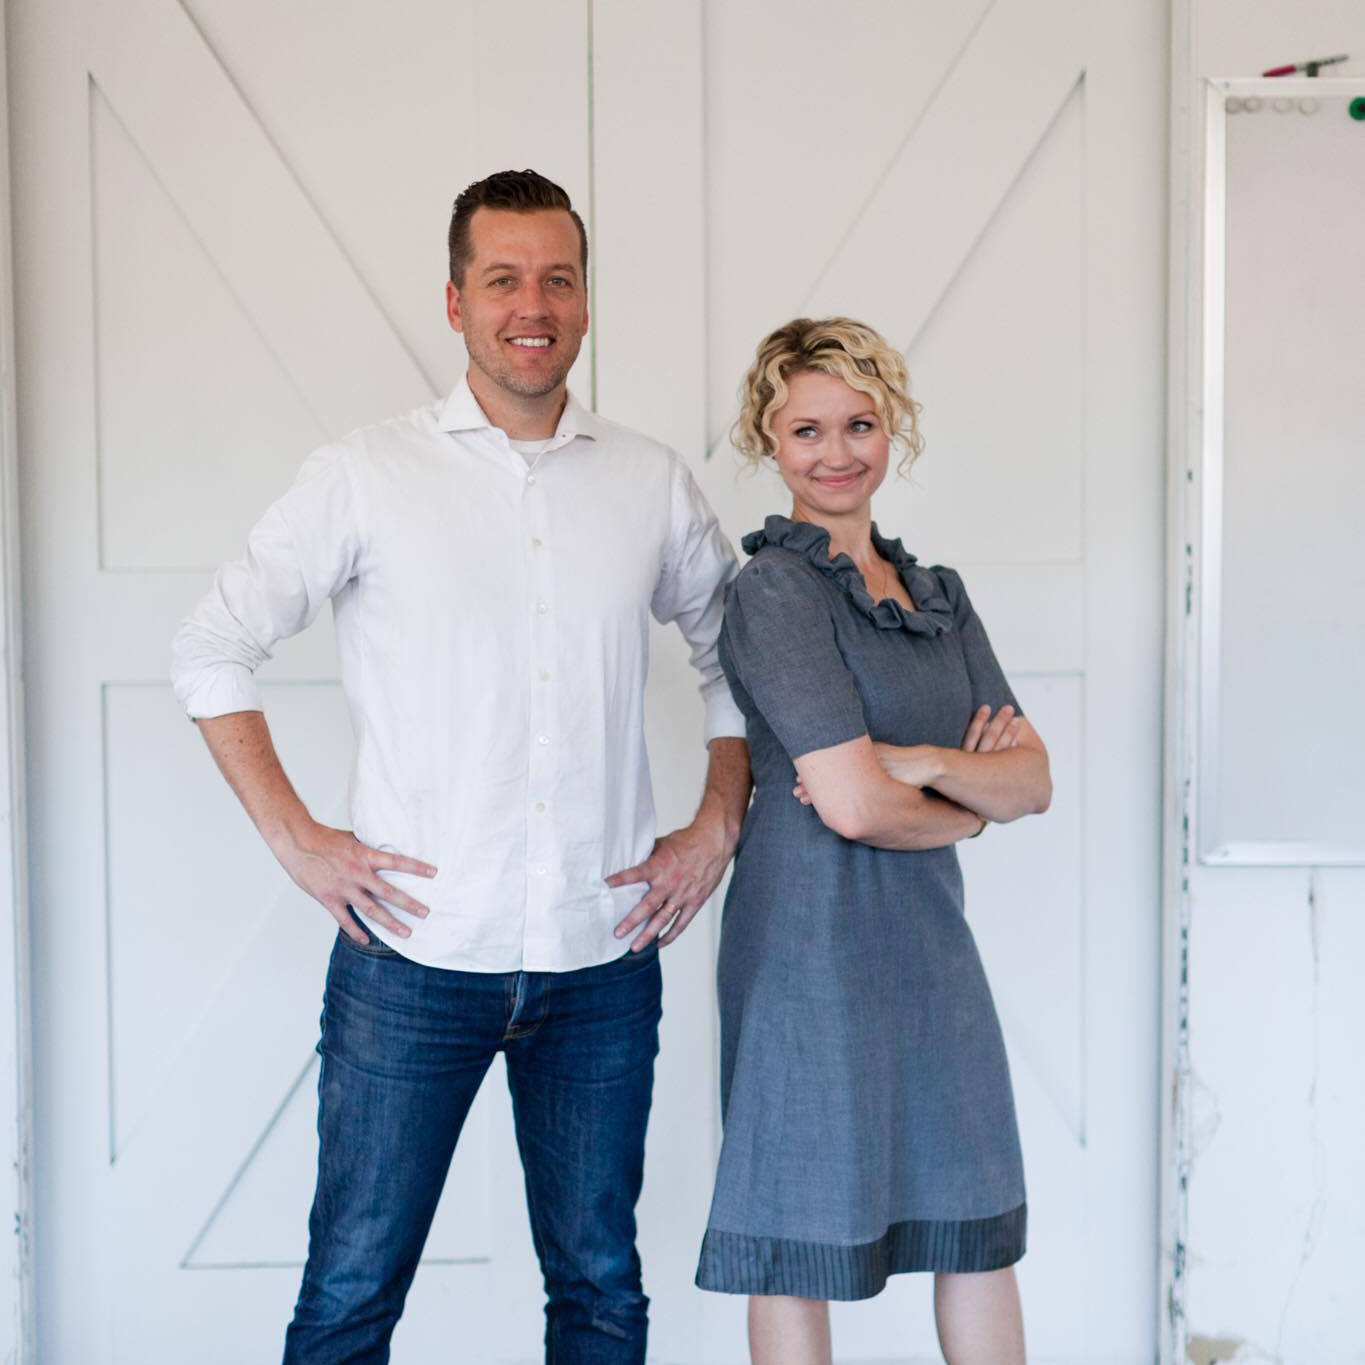 Ben and Katie created Puj.com from their garage and built it into a globally recognized 8 figure brand.